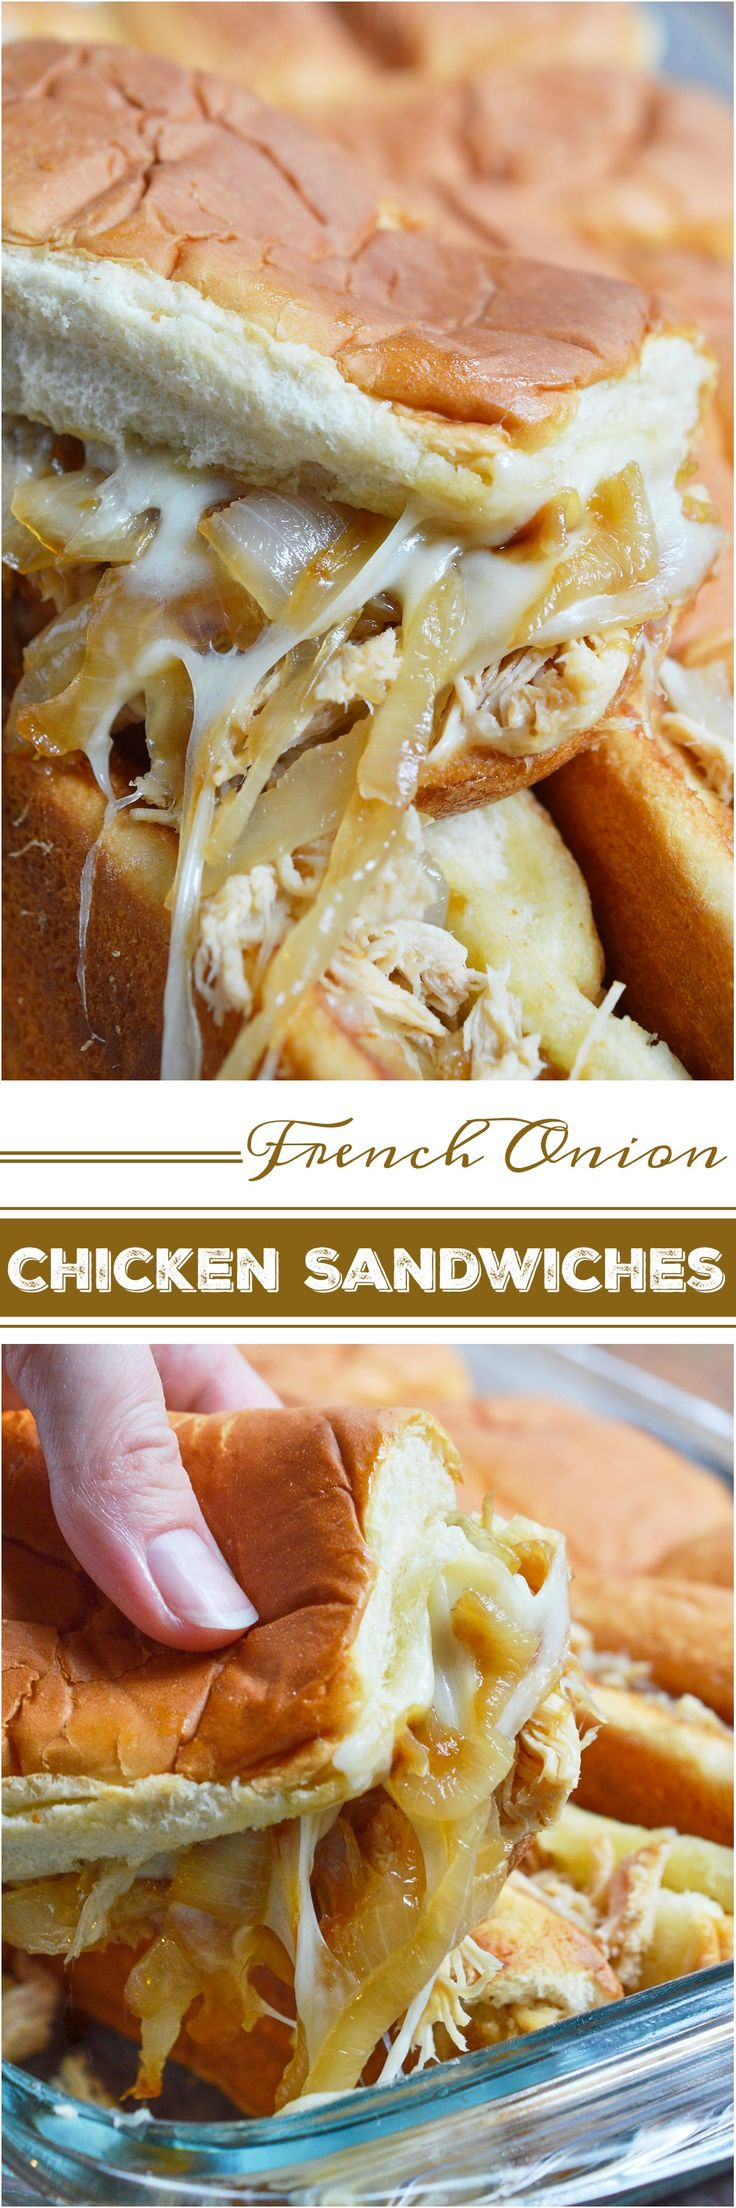 #ad These Cheesy French Onion Chicken Sandwiches are the ultimate party or game day food! Soft rolls loaded up with slow cooker chicken, caramelized onions and loads of melt cheese. This is the perfect recipe to feed your hungry crowd! #RealCheesePeople